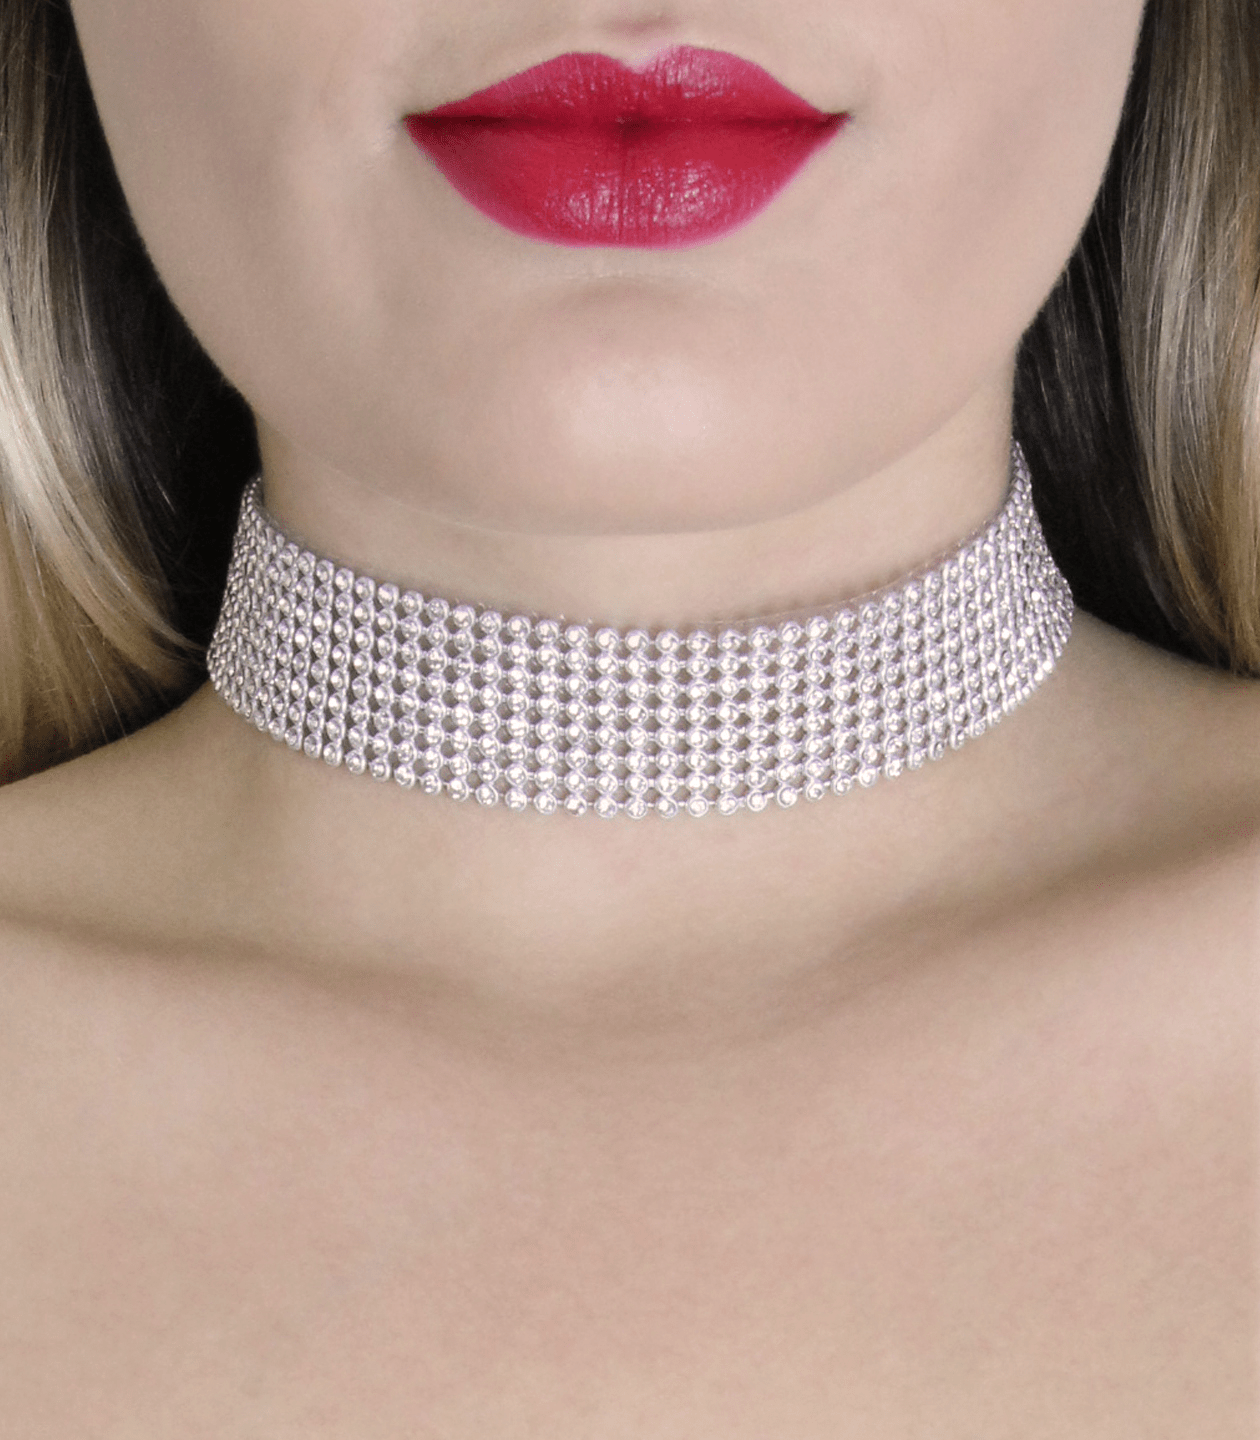 CHO016 diamond choker love in leather front image saucy hq